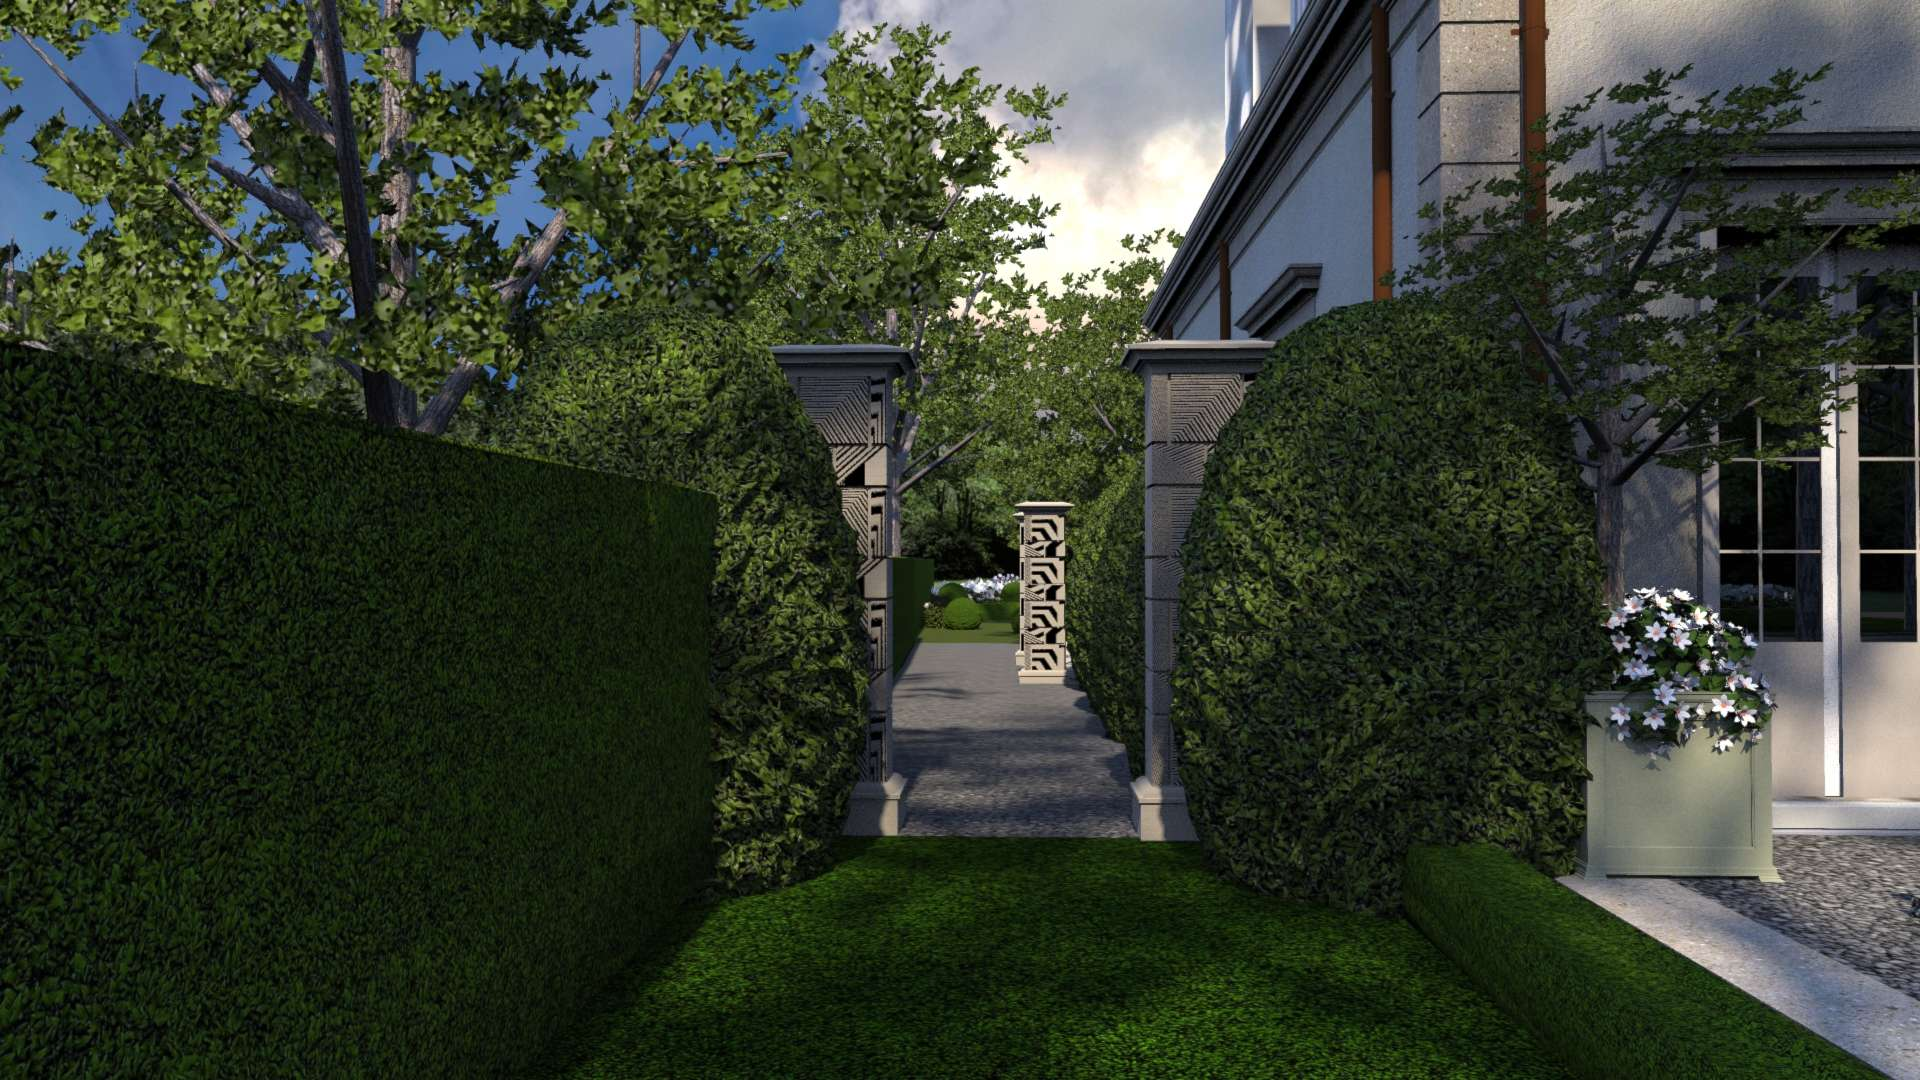 Indiana limestone columns support ornamental iron walk-through gates. Ornamental holly topiary rest on both sides of the gate and provide architectural softening and scale to the landscape..